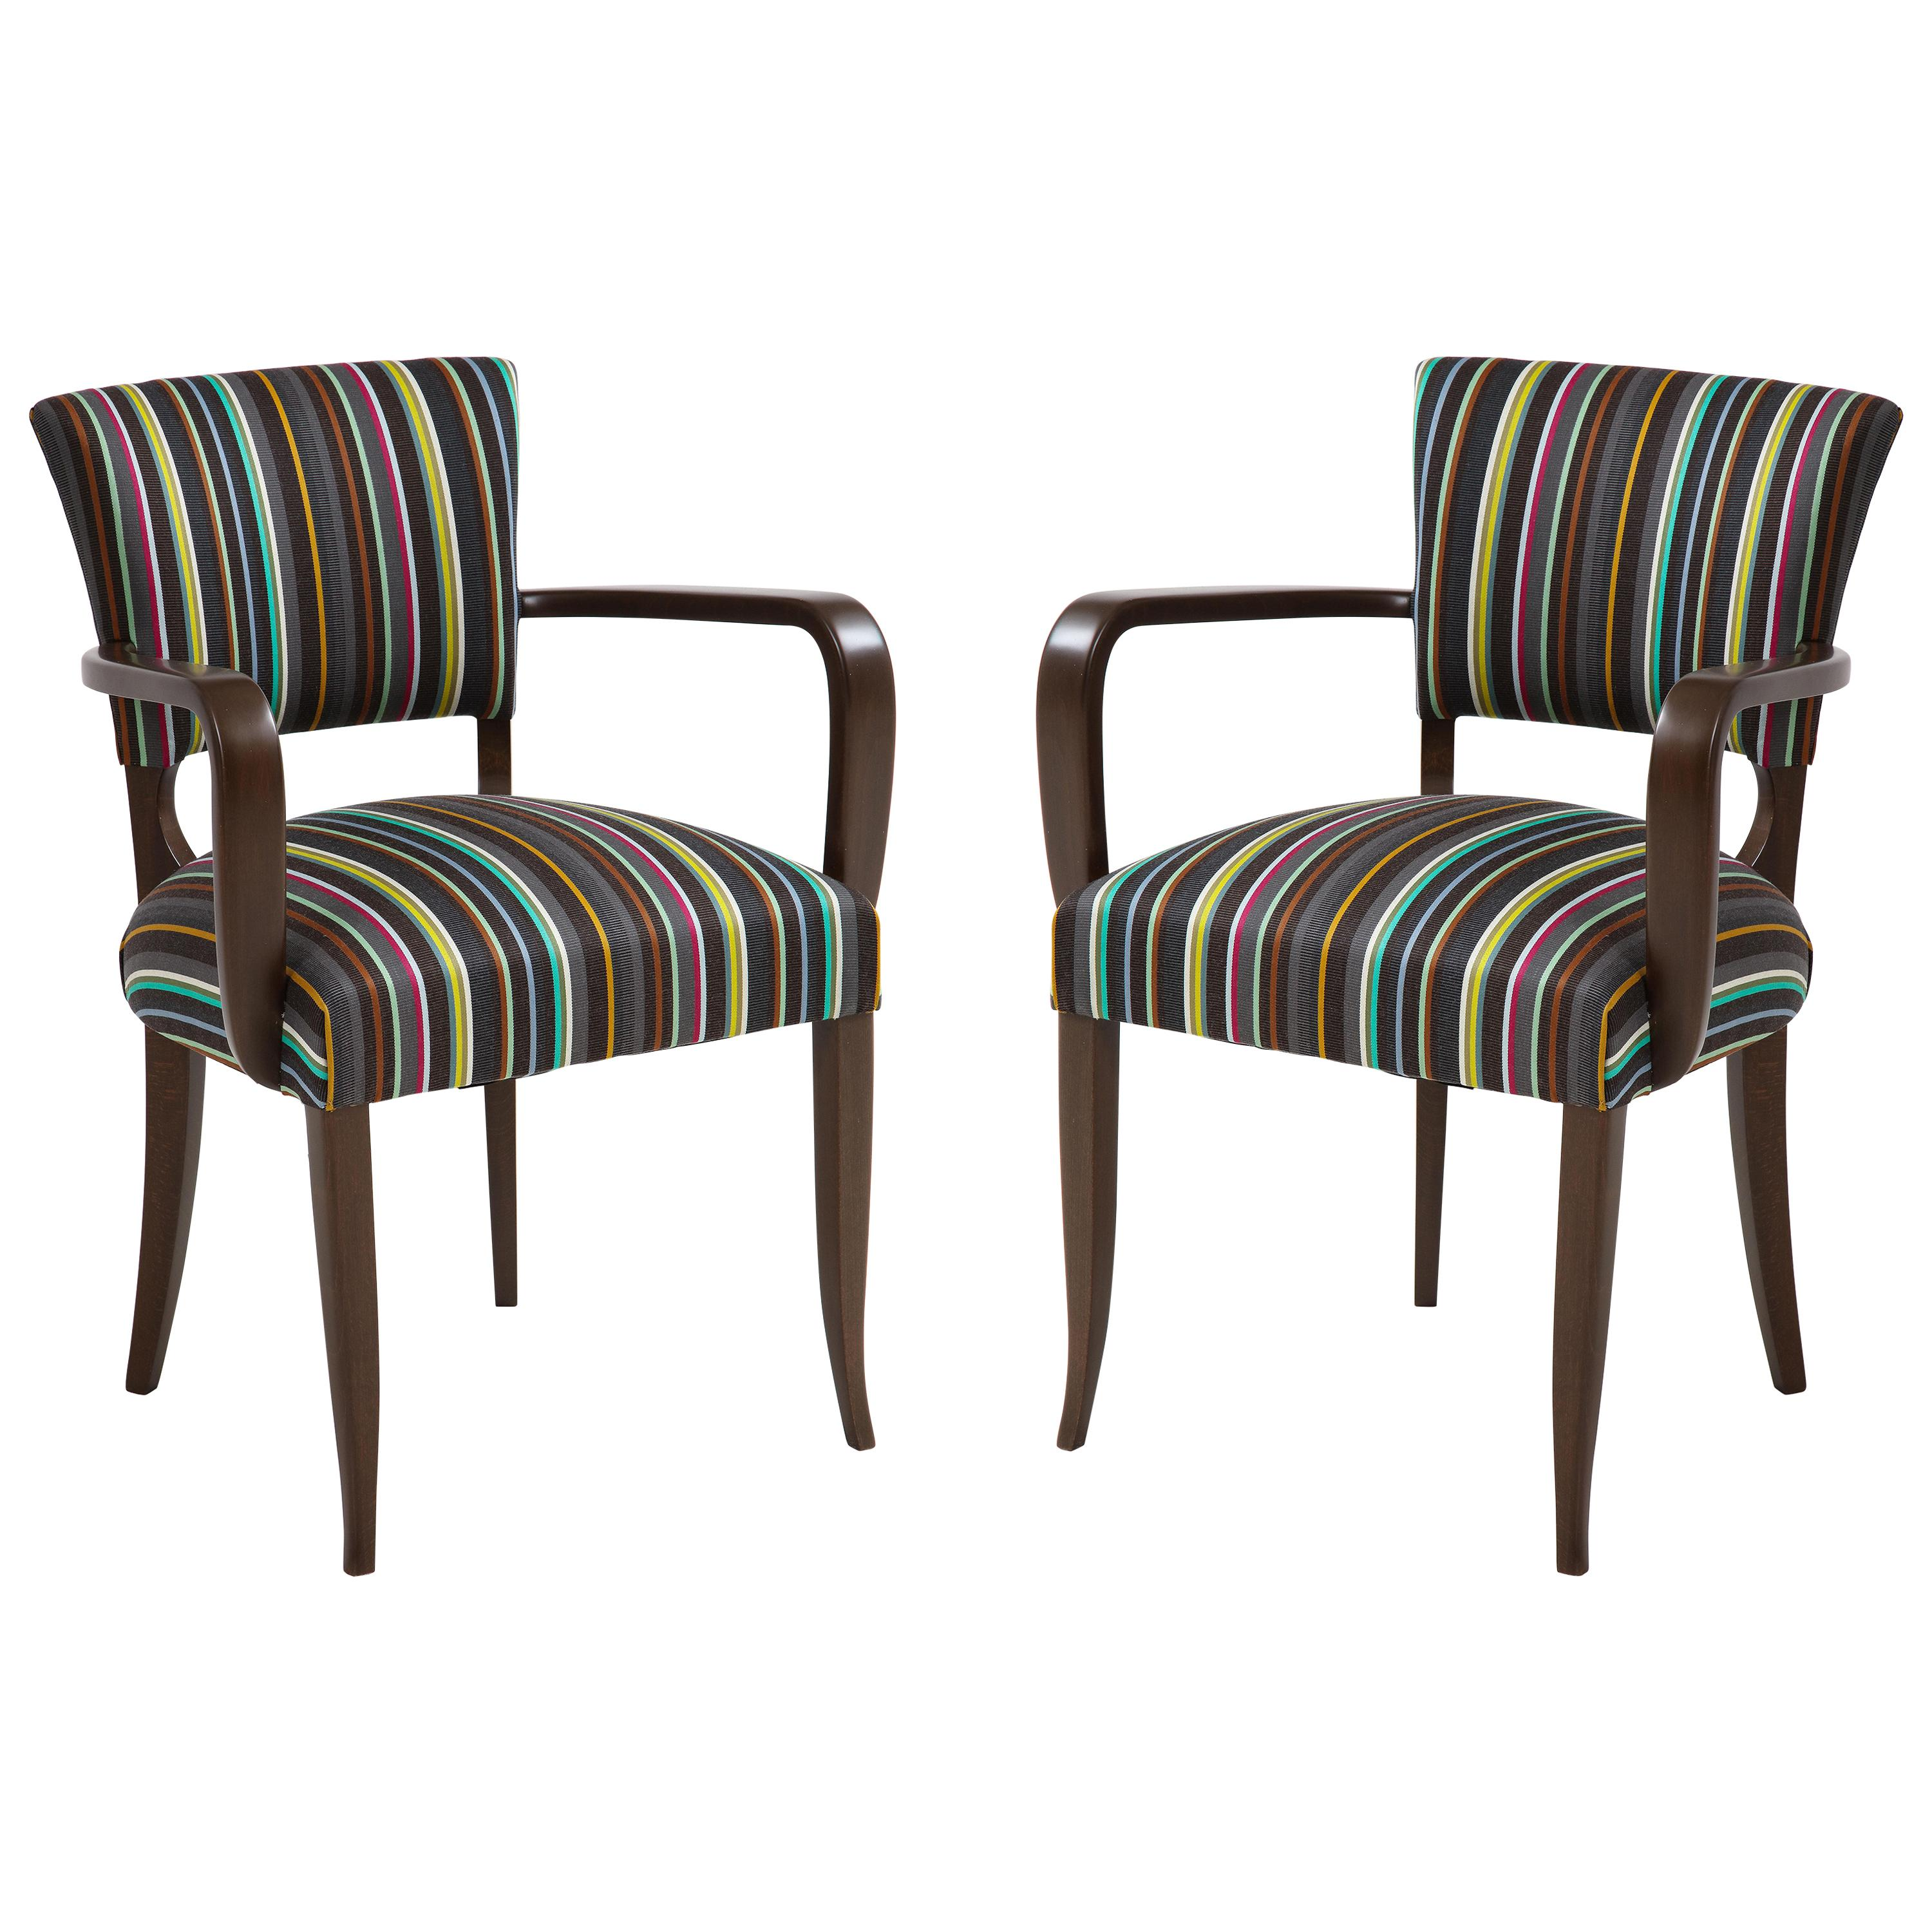 French 1940s, Paul Smith Striped Armchairs